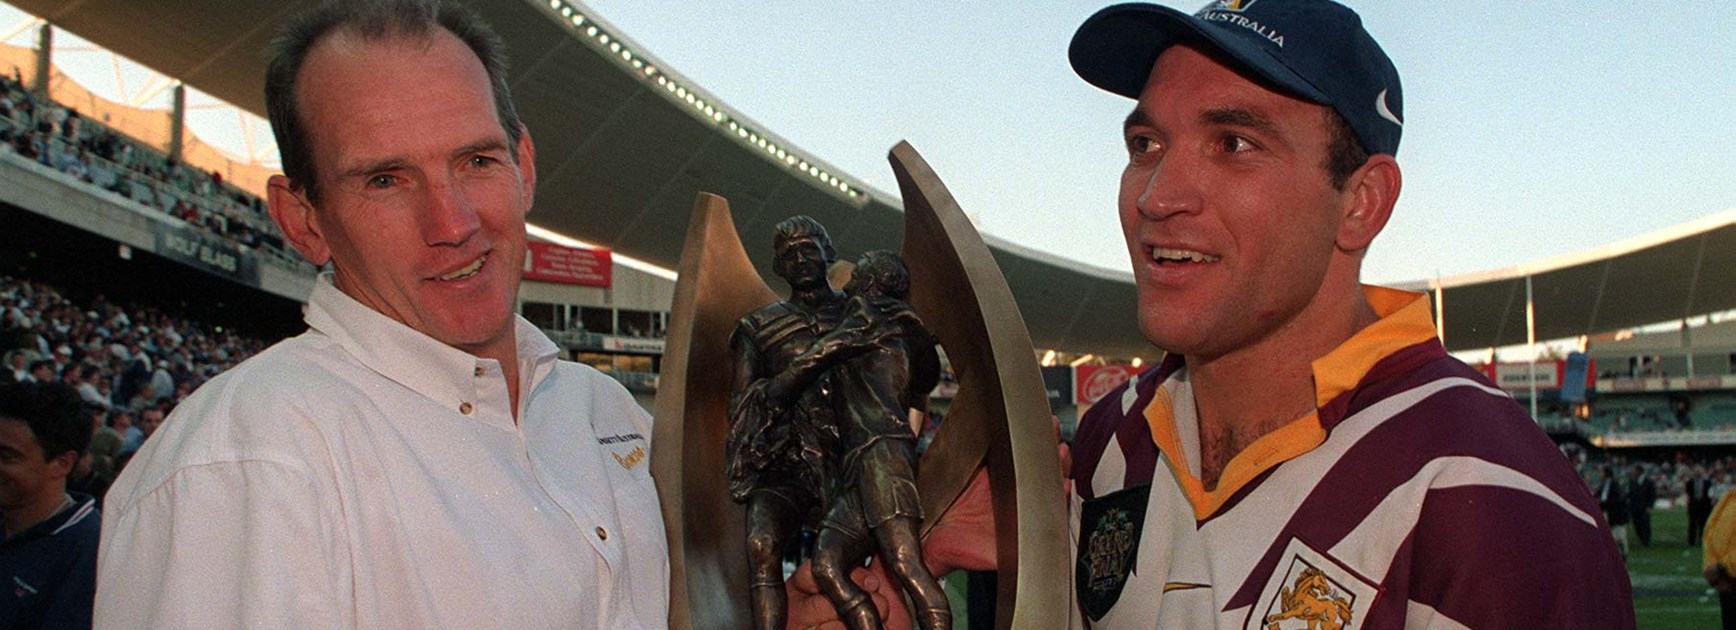 Gorden Tallis with Broncos coach Wayne Bennett after the Broncos' 1998 NRL Grand Final victory.